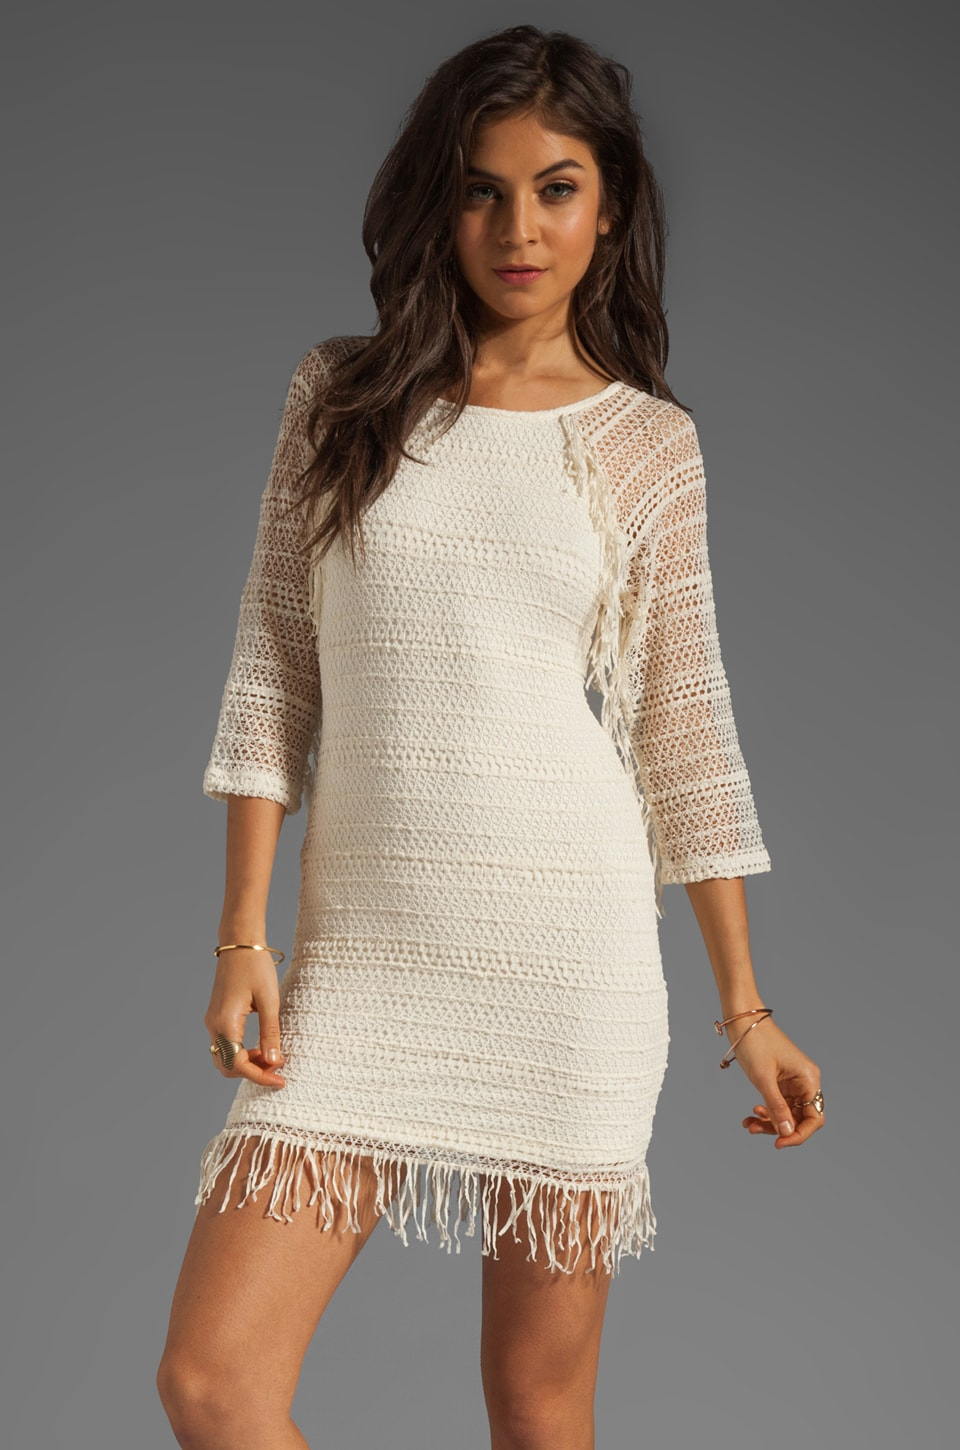 Nightcap Fringe Lace Raglan Dress in Natural